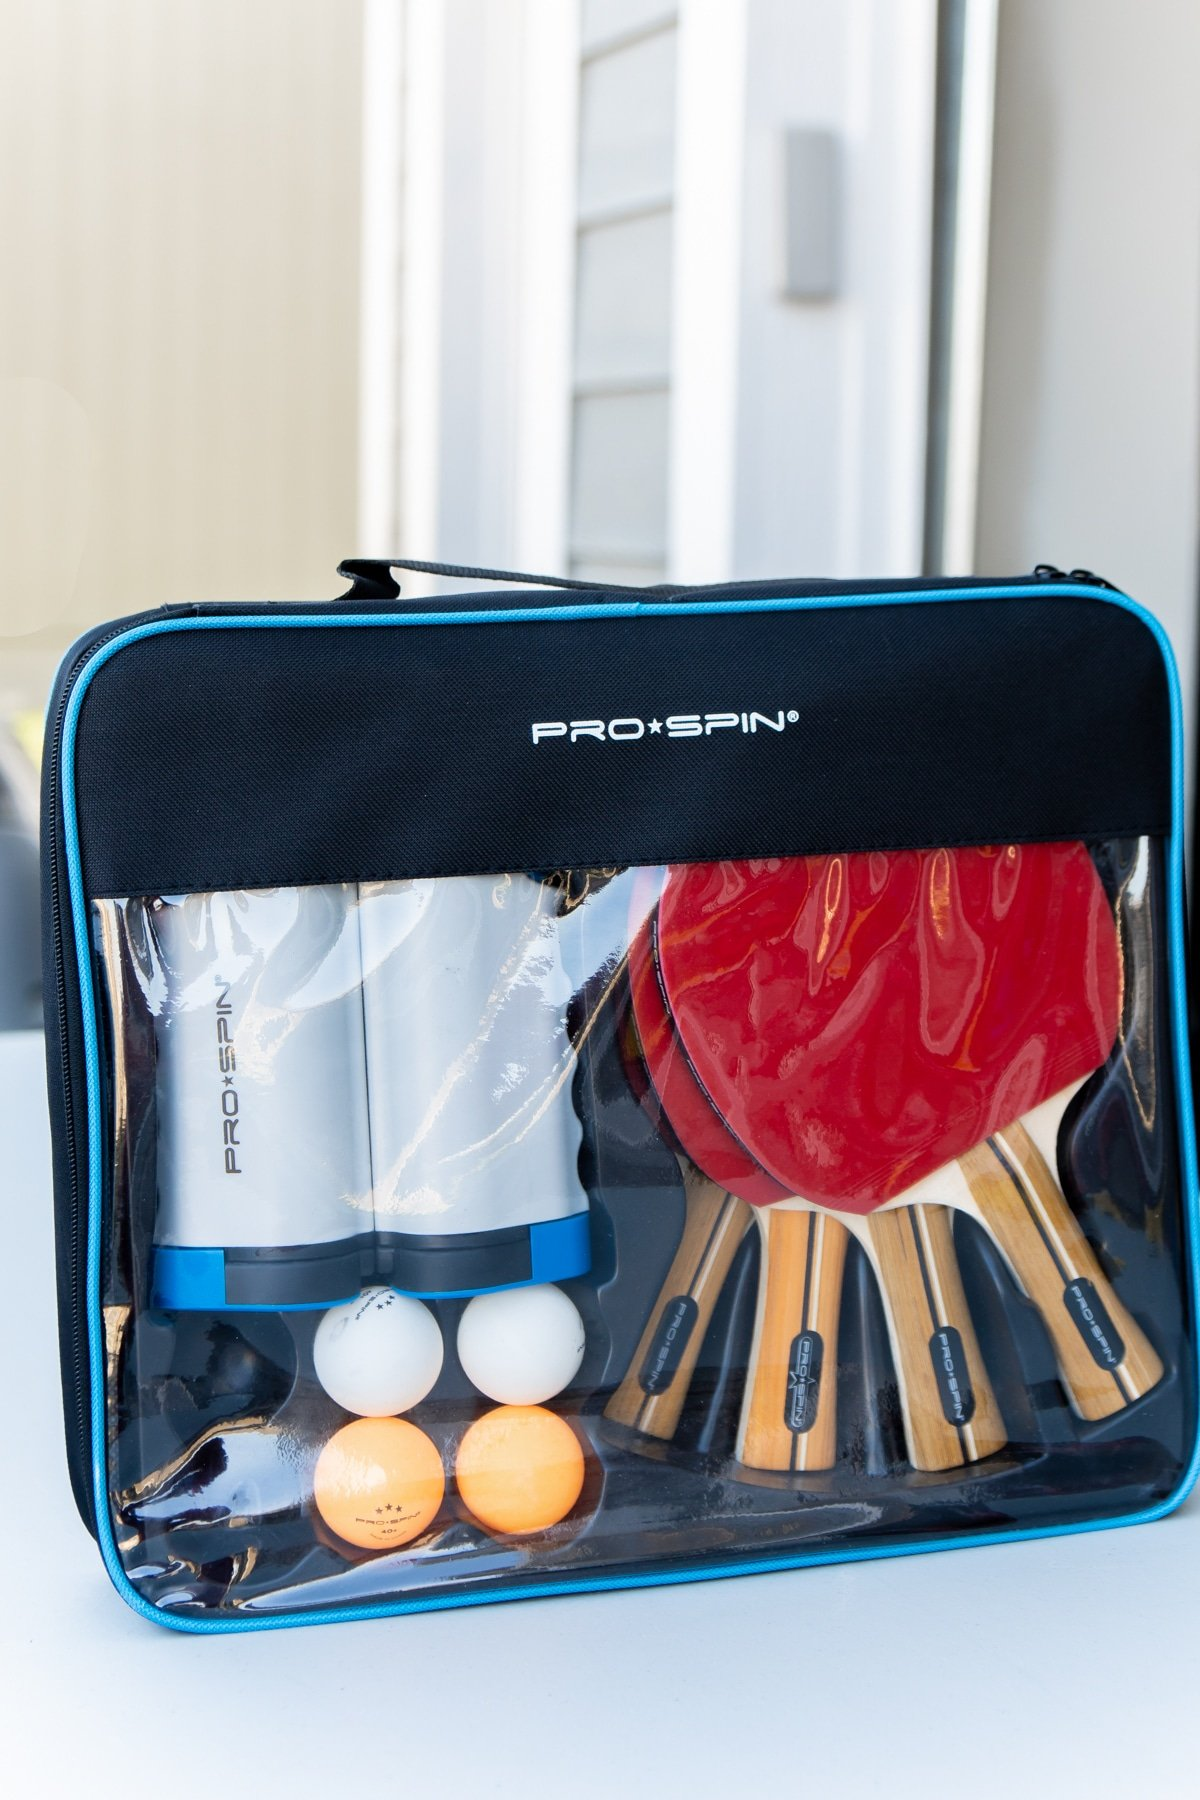 Ping pong table set in a carrying case